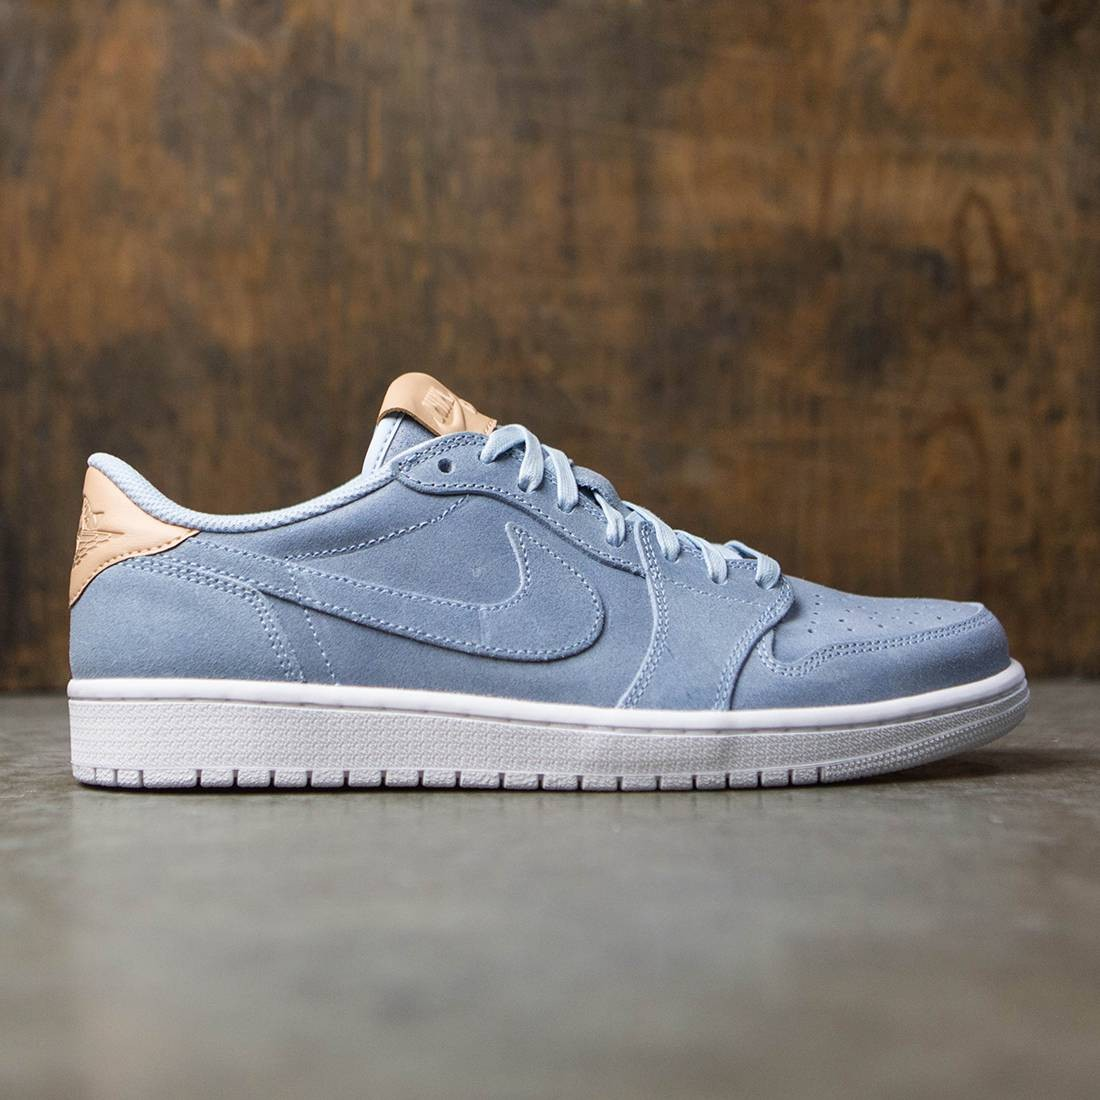 check out 3d13a ac655 promo code air jordan 1 retro low og 271f5 133cb